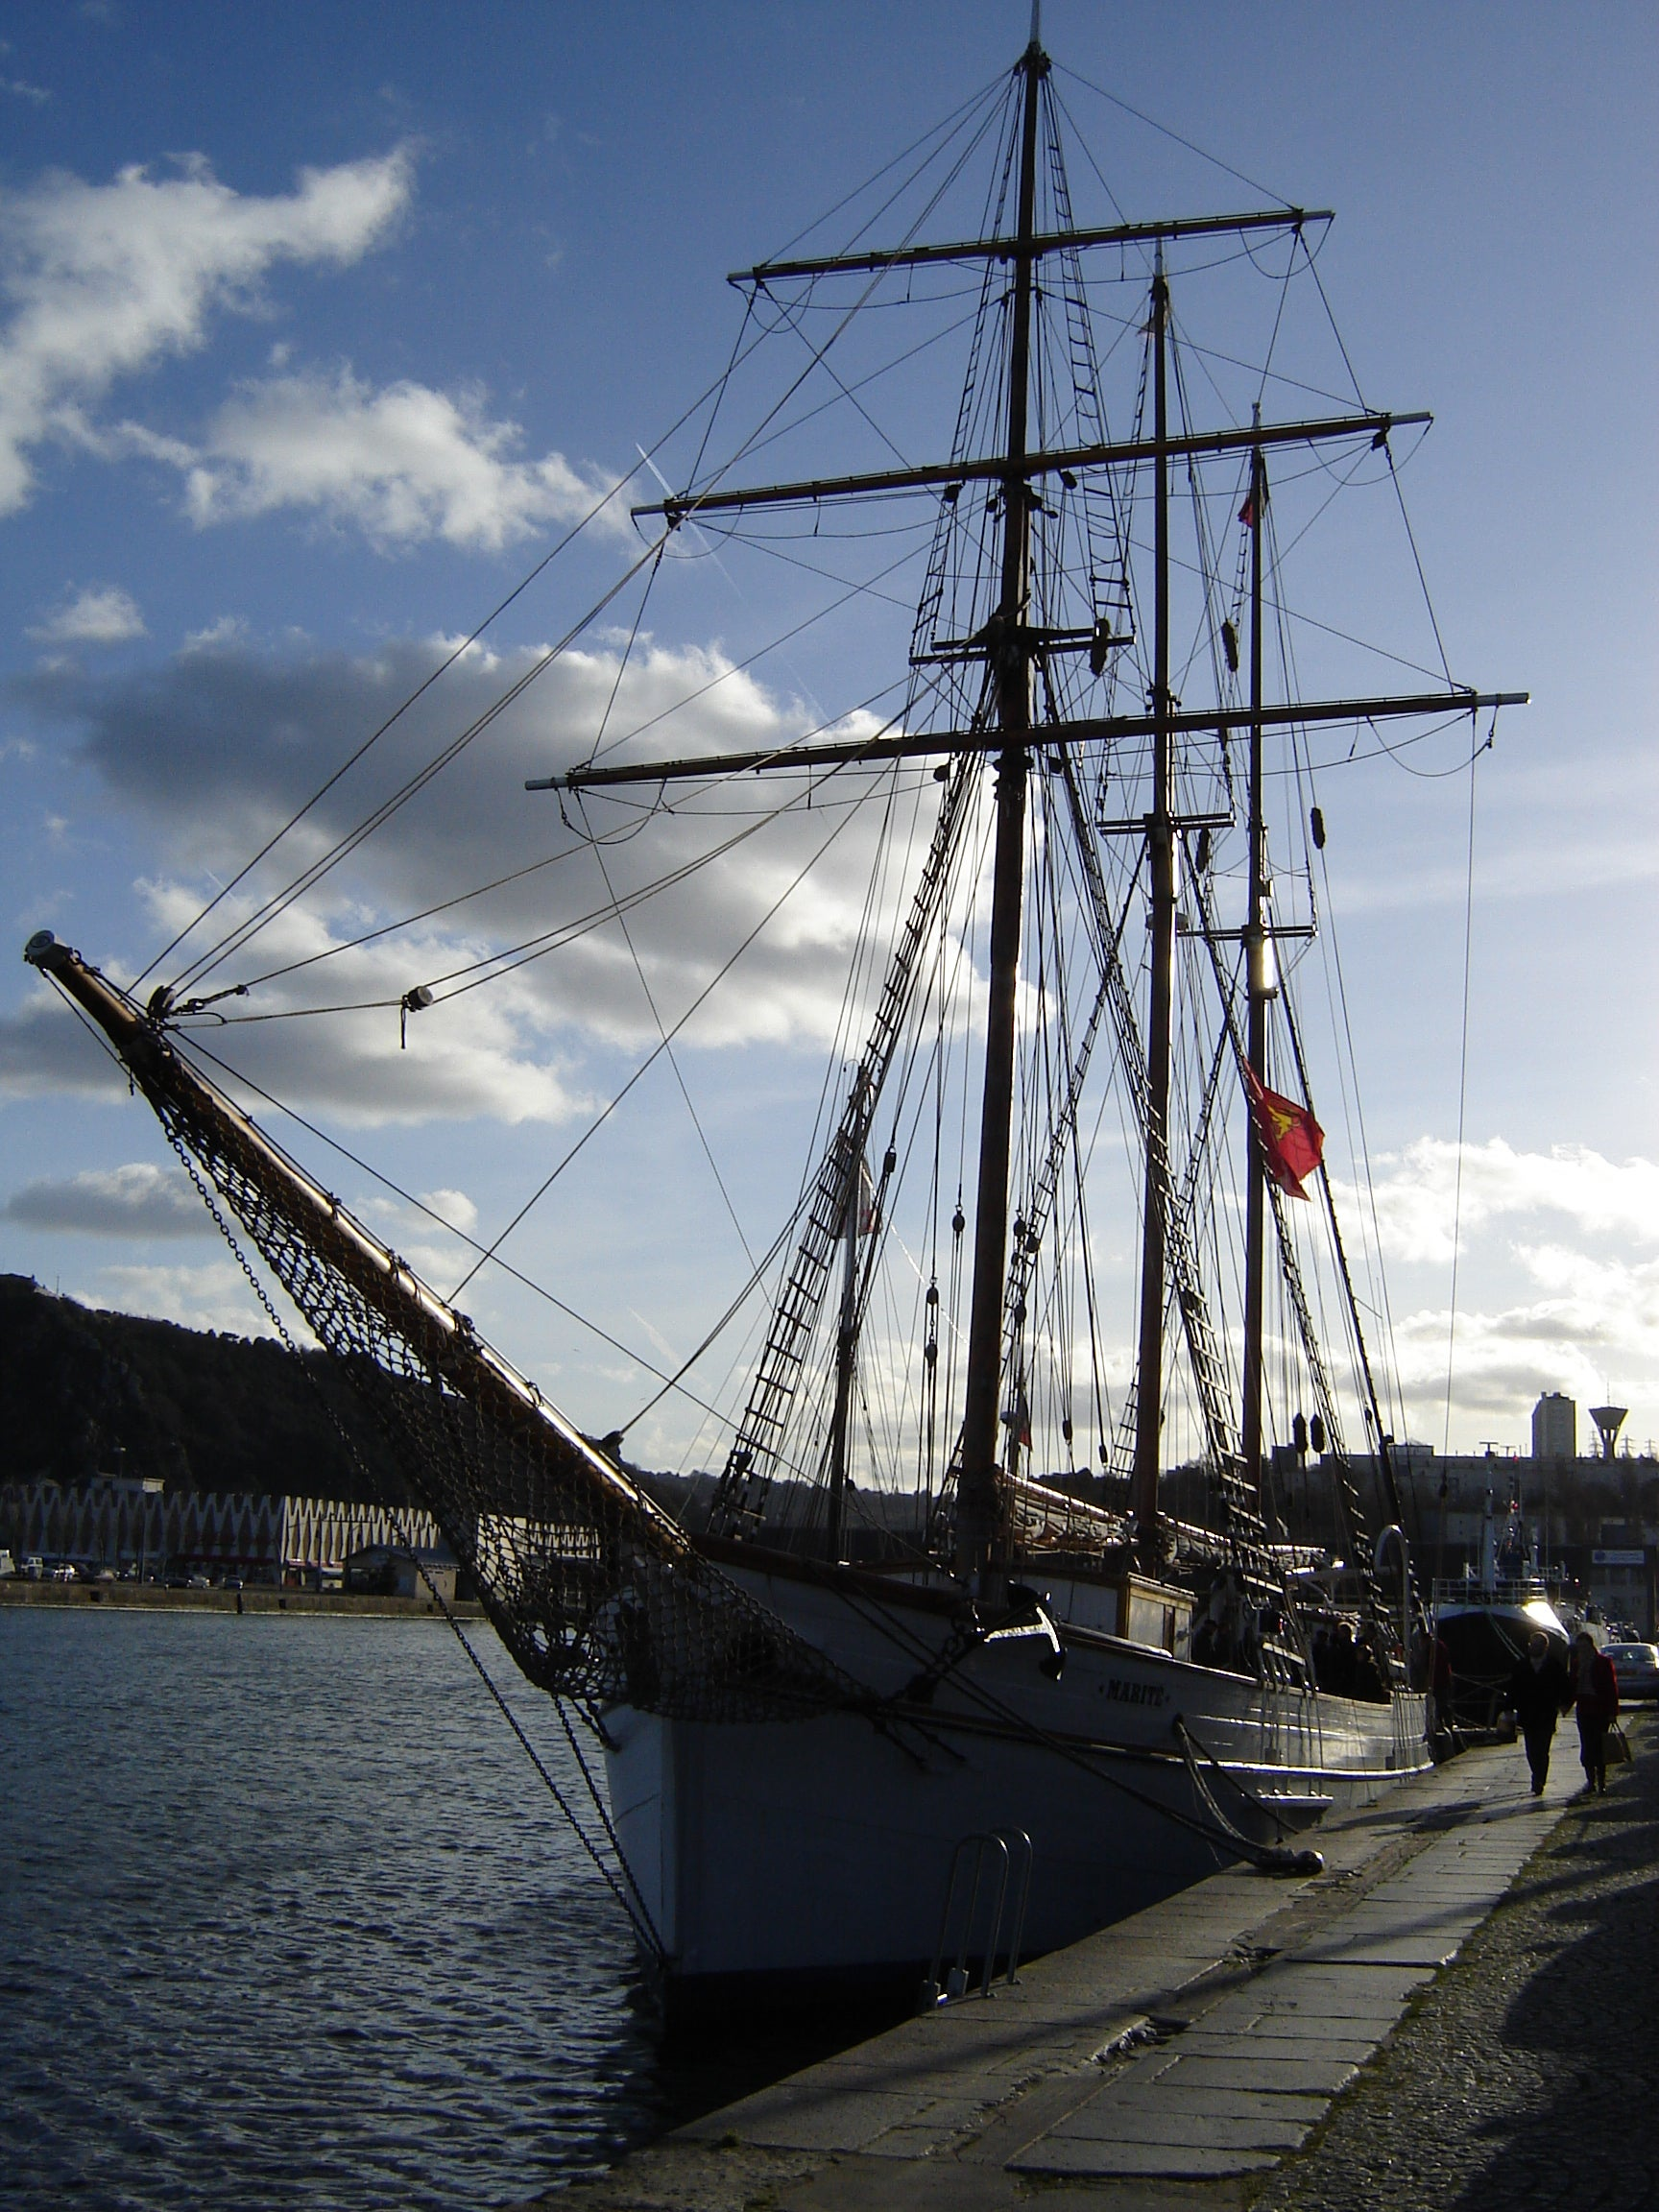 Harbour of Cherbourg